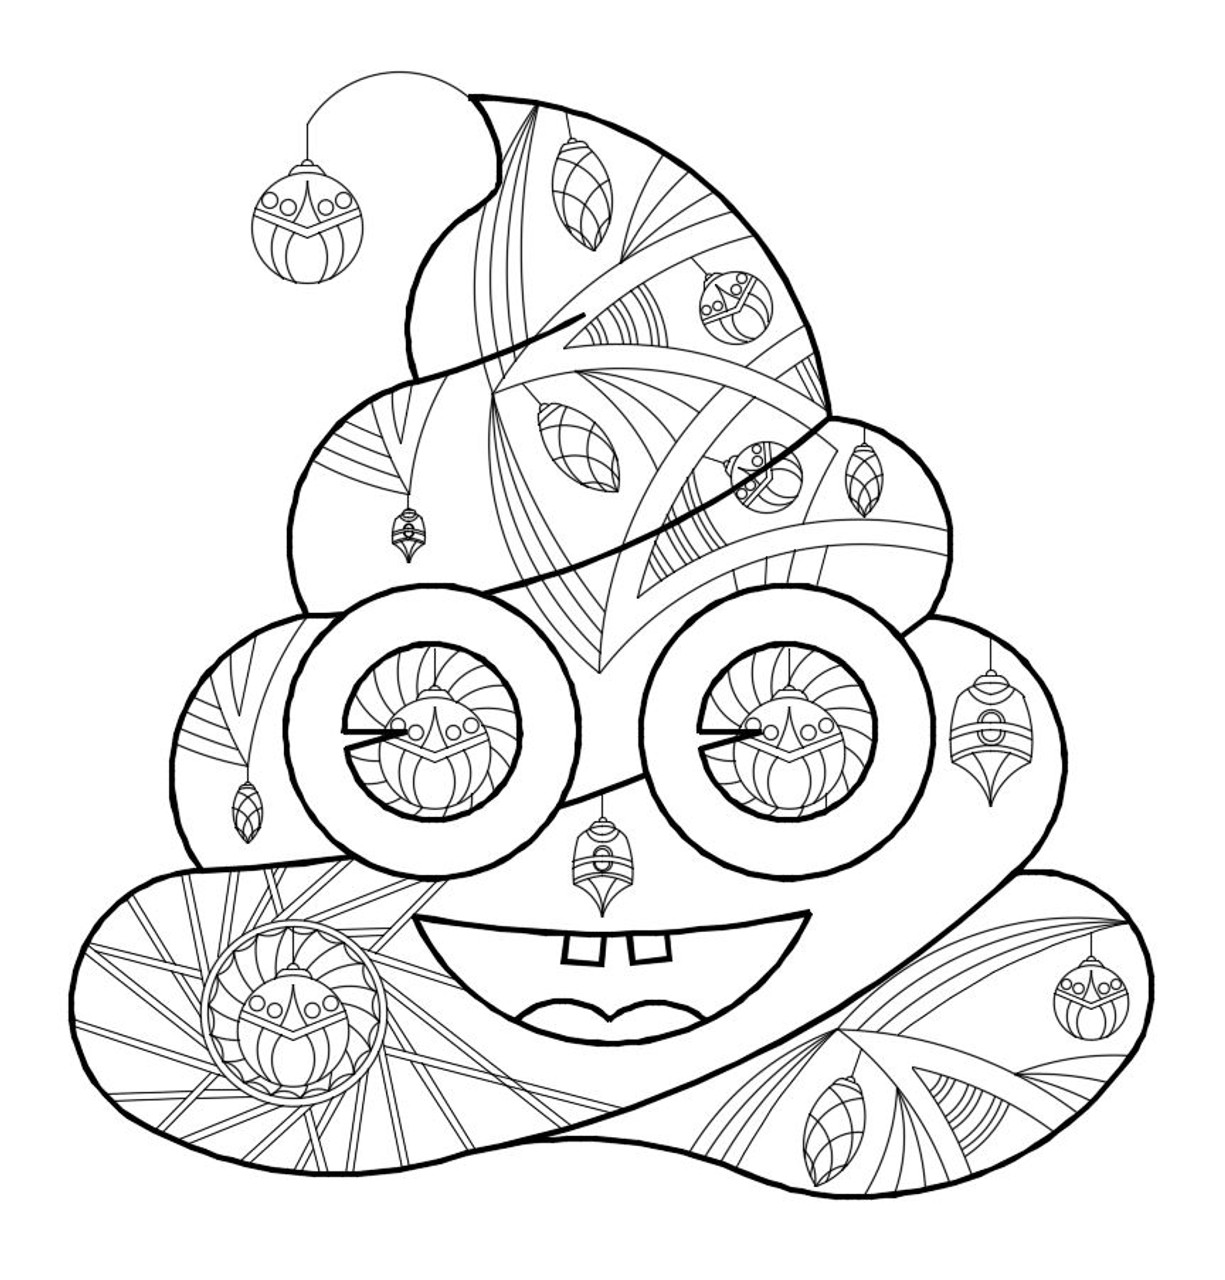 5 Free Christmas Printable Coloring Pages – Snowman, Tree, Bells | Cores do  natal, Pintura para crianças, Natal colorir | 1280x1225